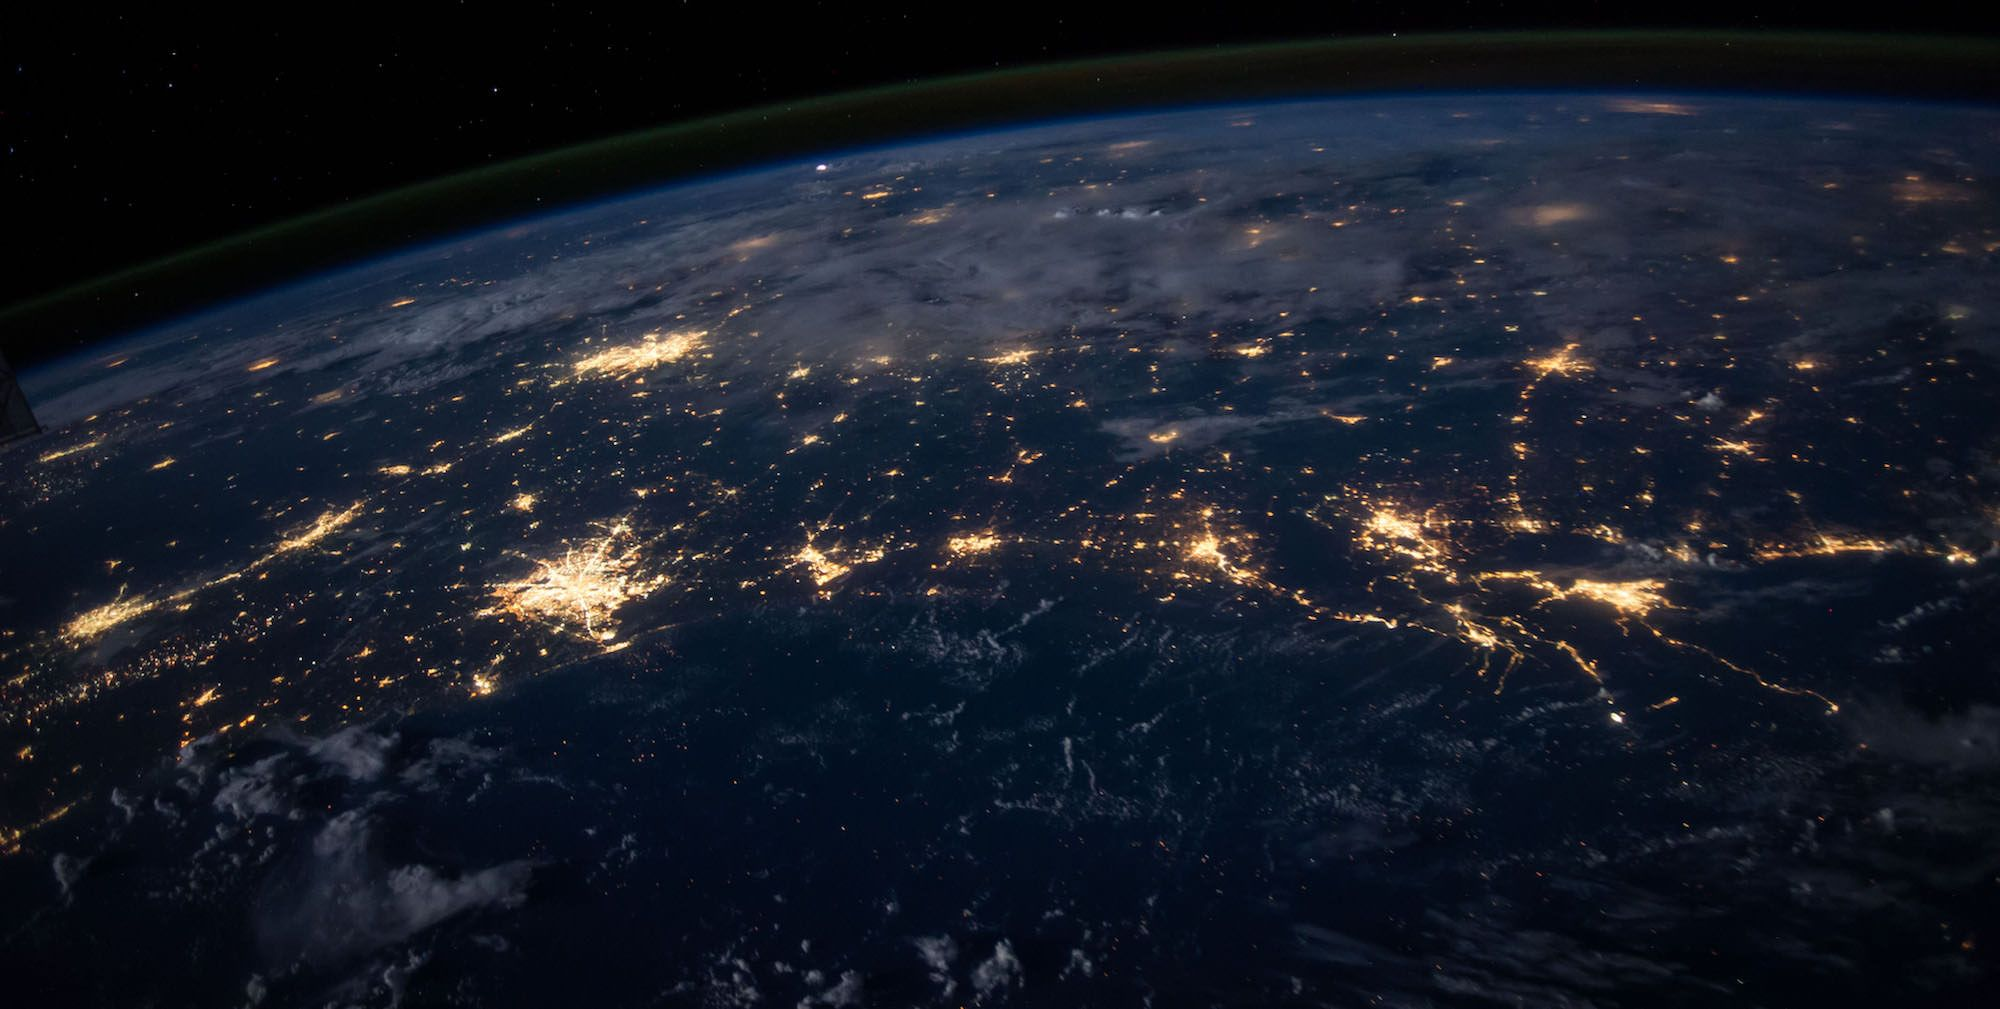 View from space with city lights